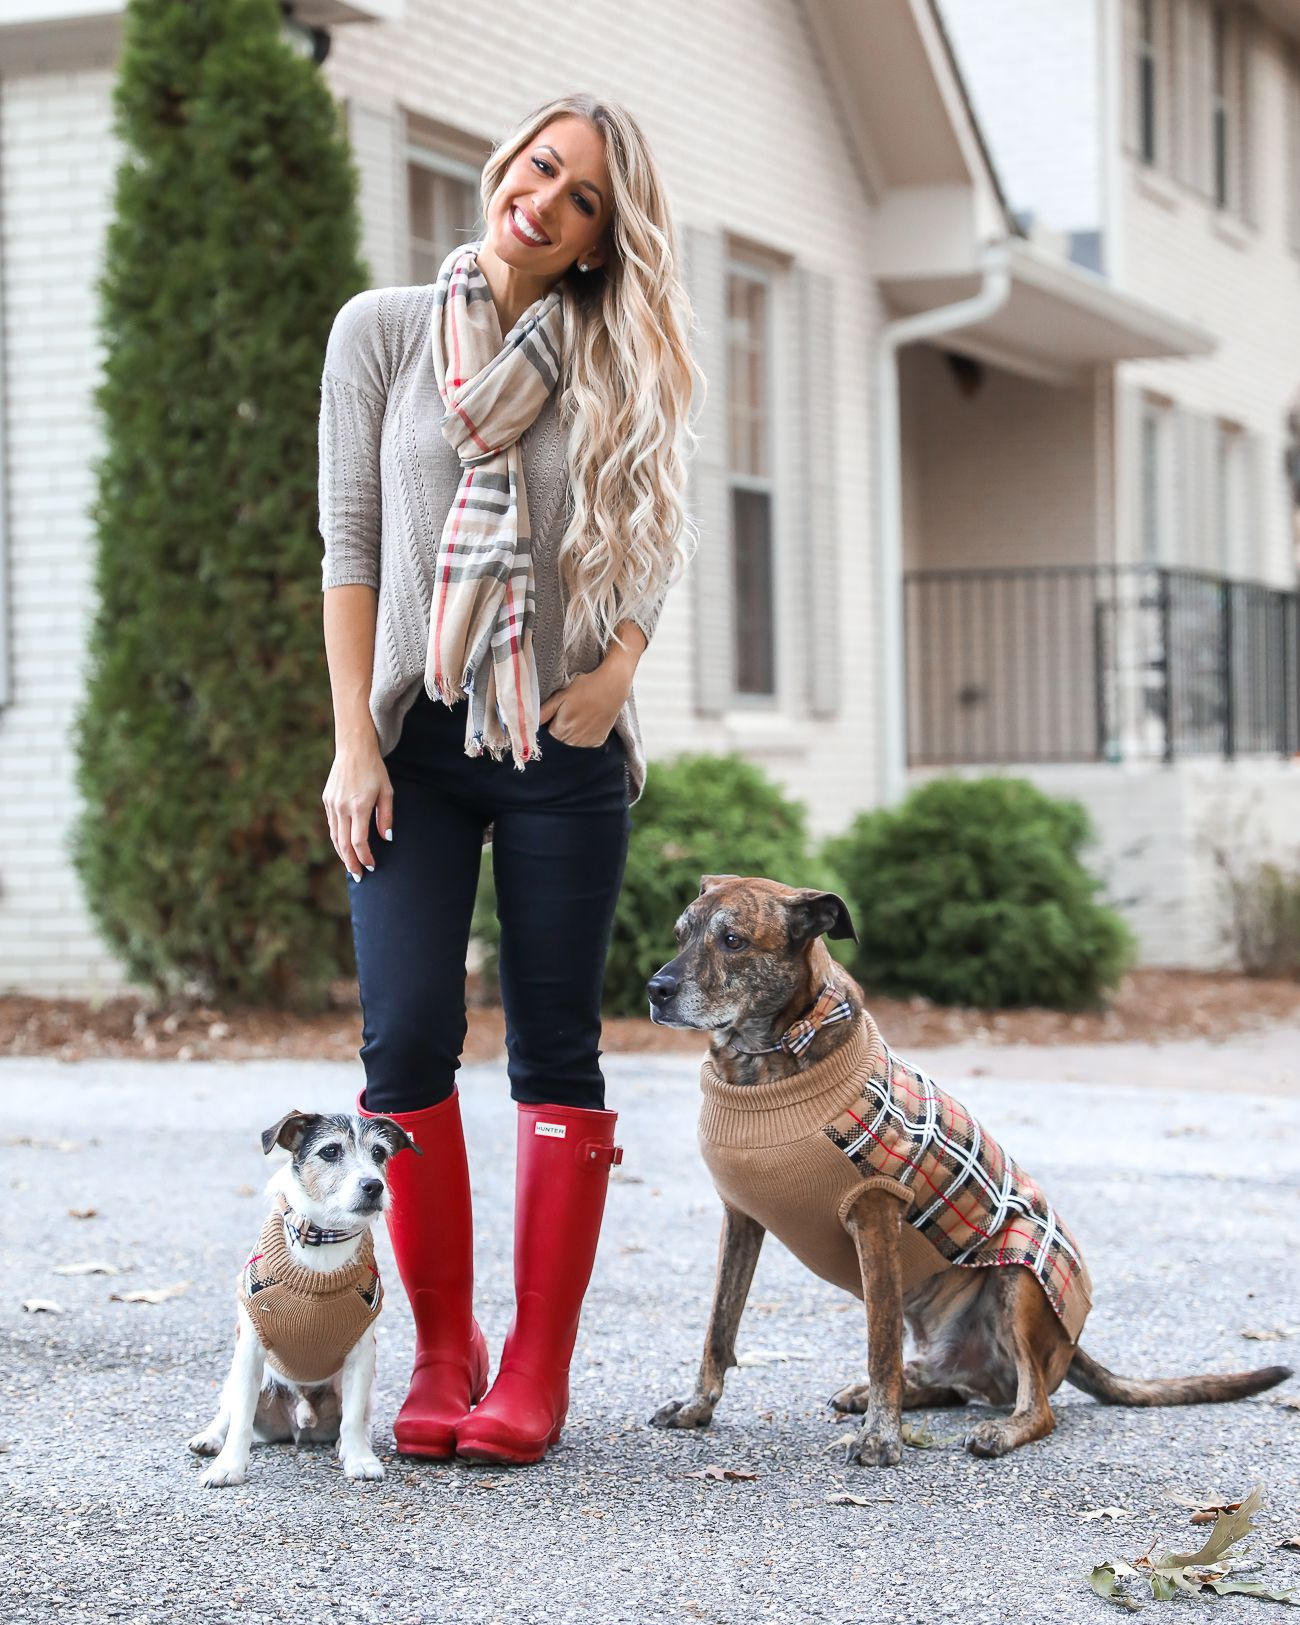 6507de3c42 Thanksgiving Day Outfit Idea Red Hunter Boots Burberry Scarf Dog sweater  Casual Holiday Outfit Idea